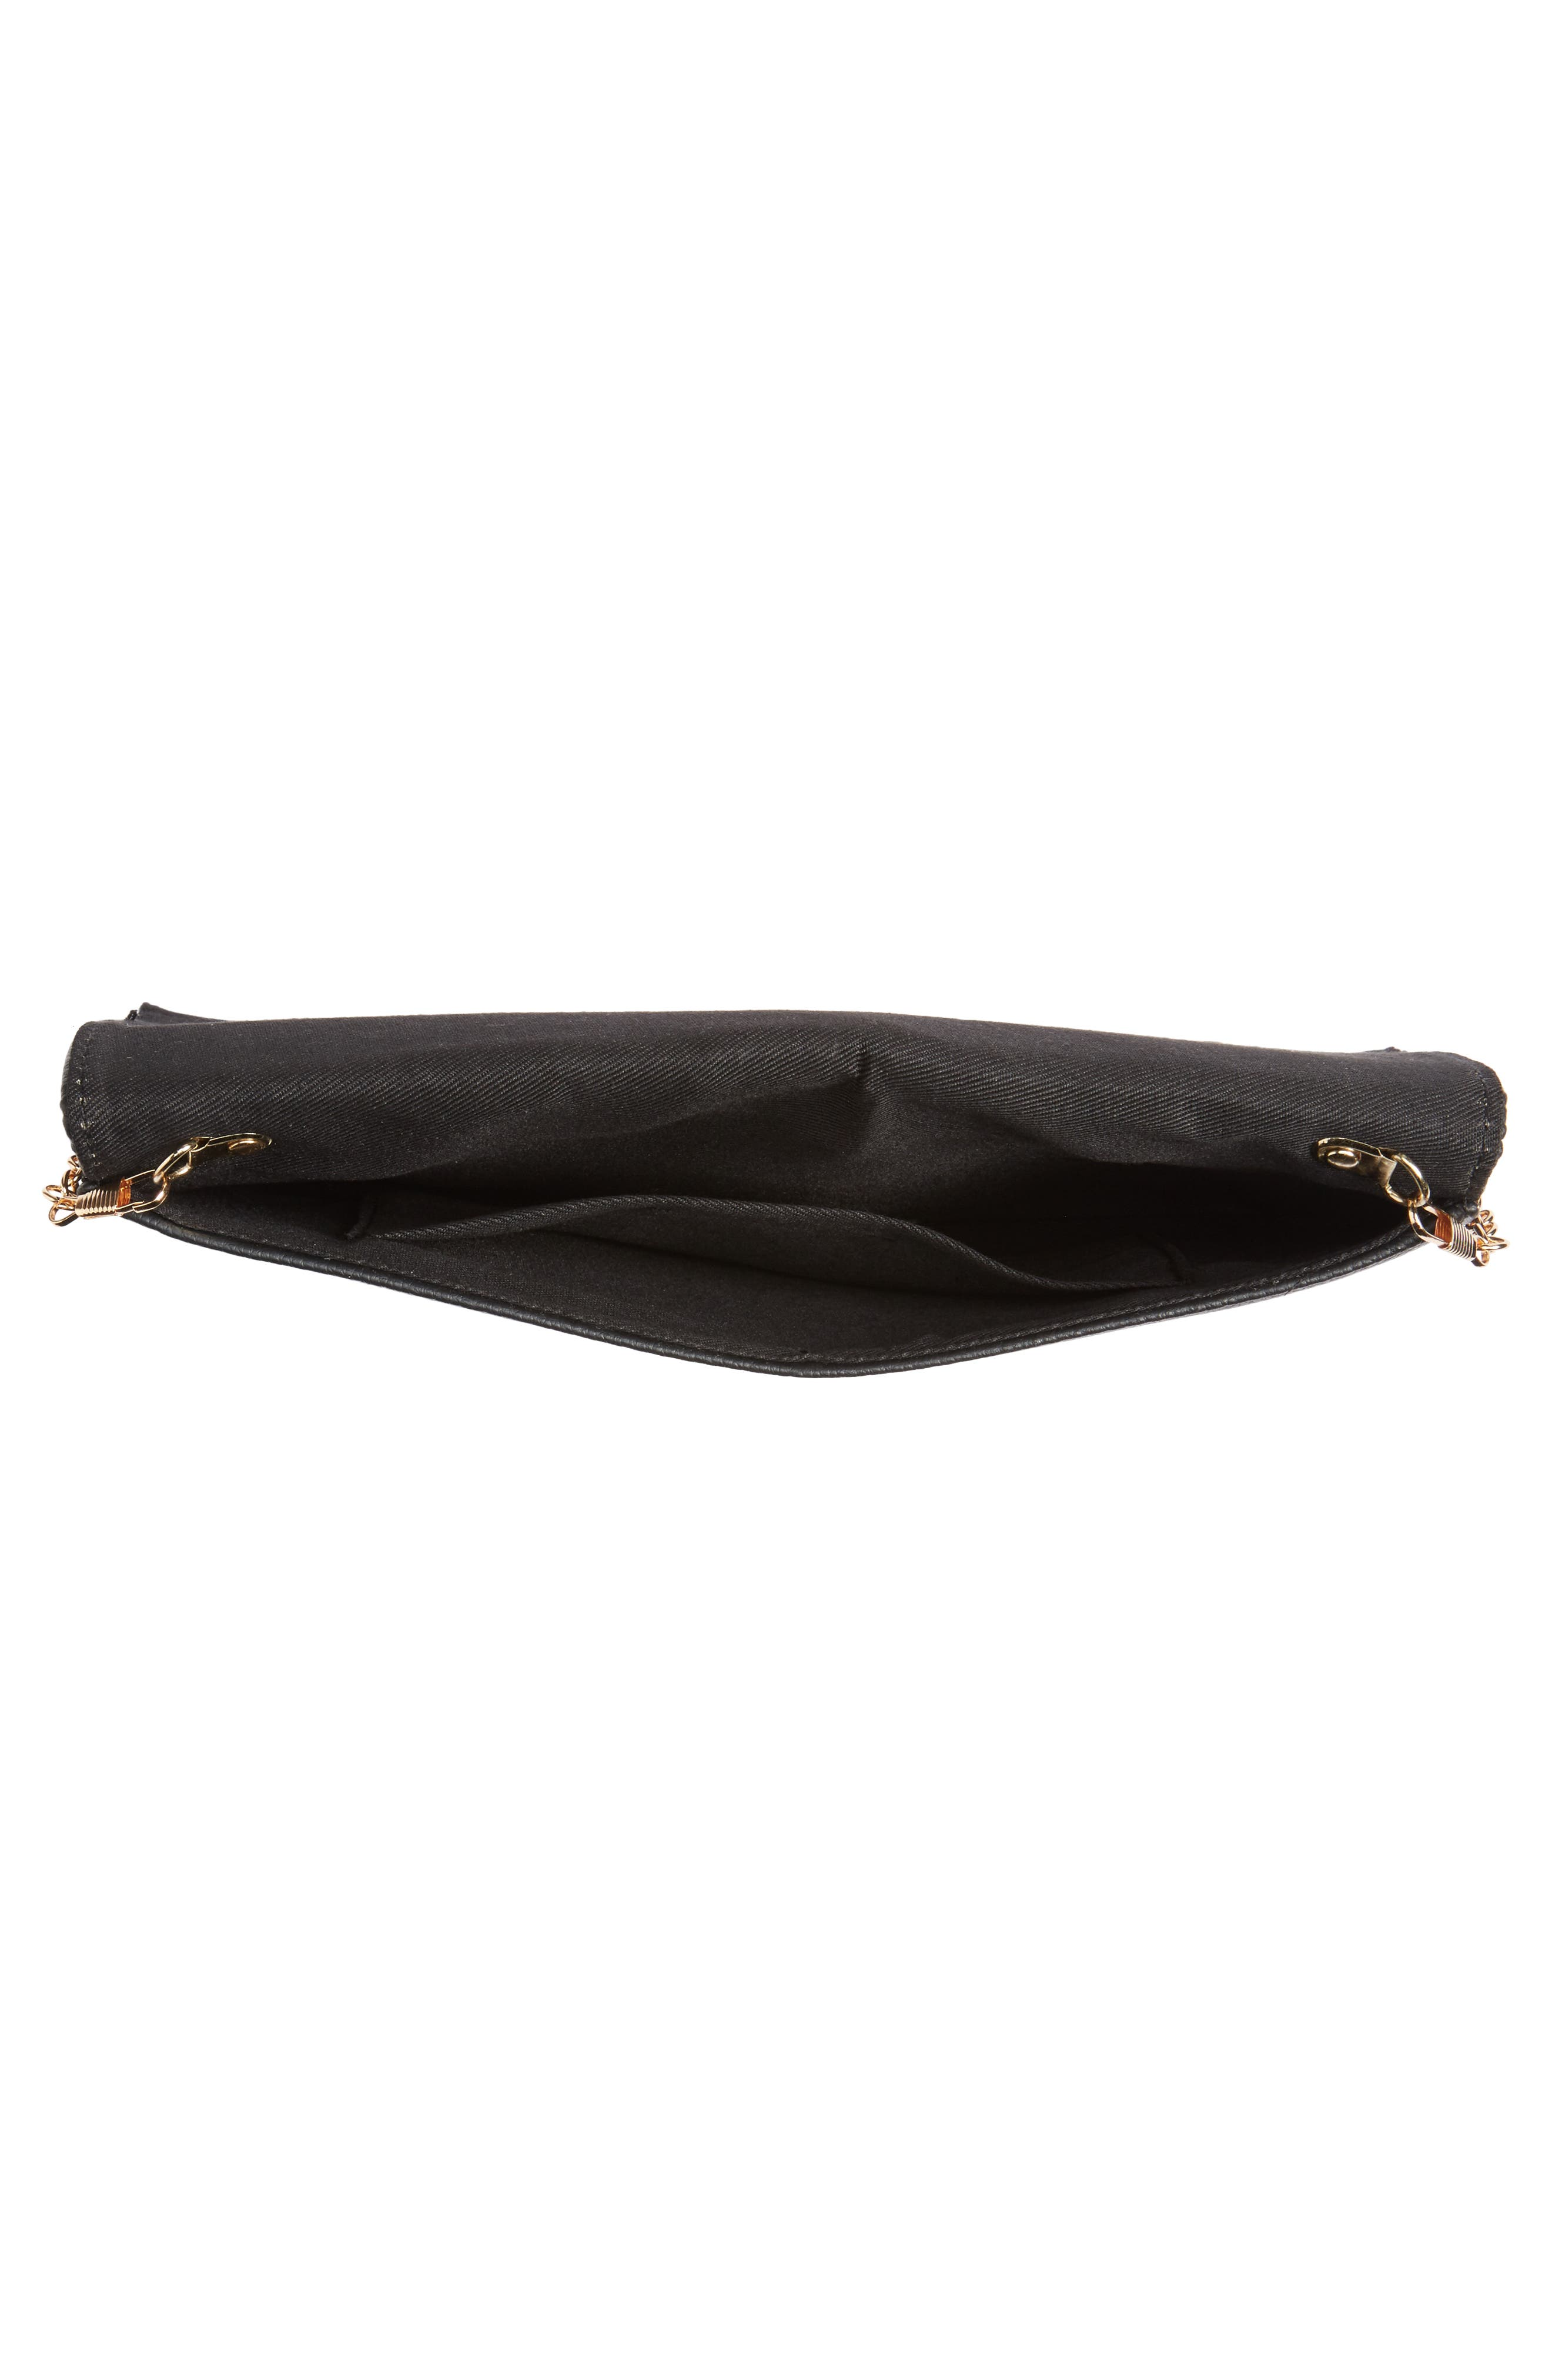 NATASHA COUTURE,                             Natasha Chain Clutch,                             Alternate thumbnail 4, color,                             001